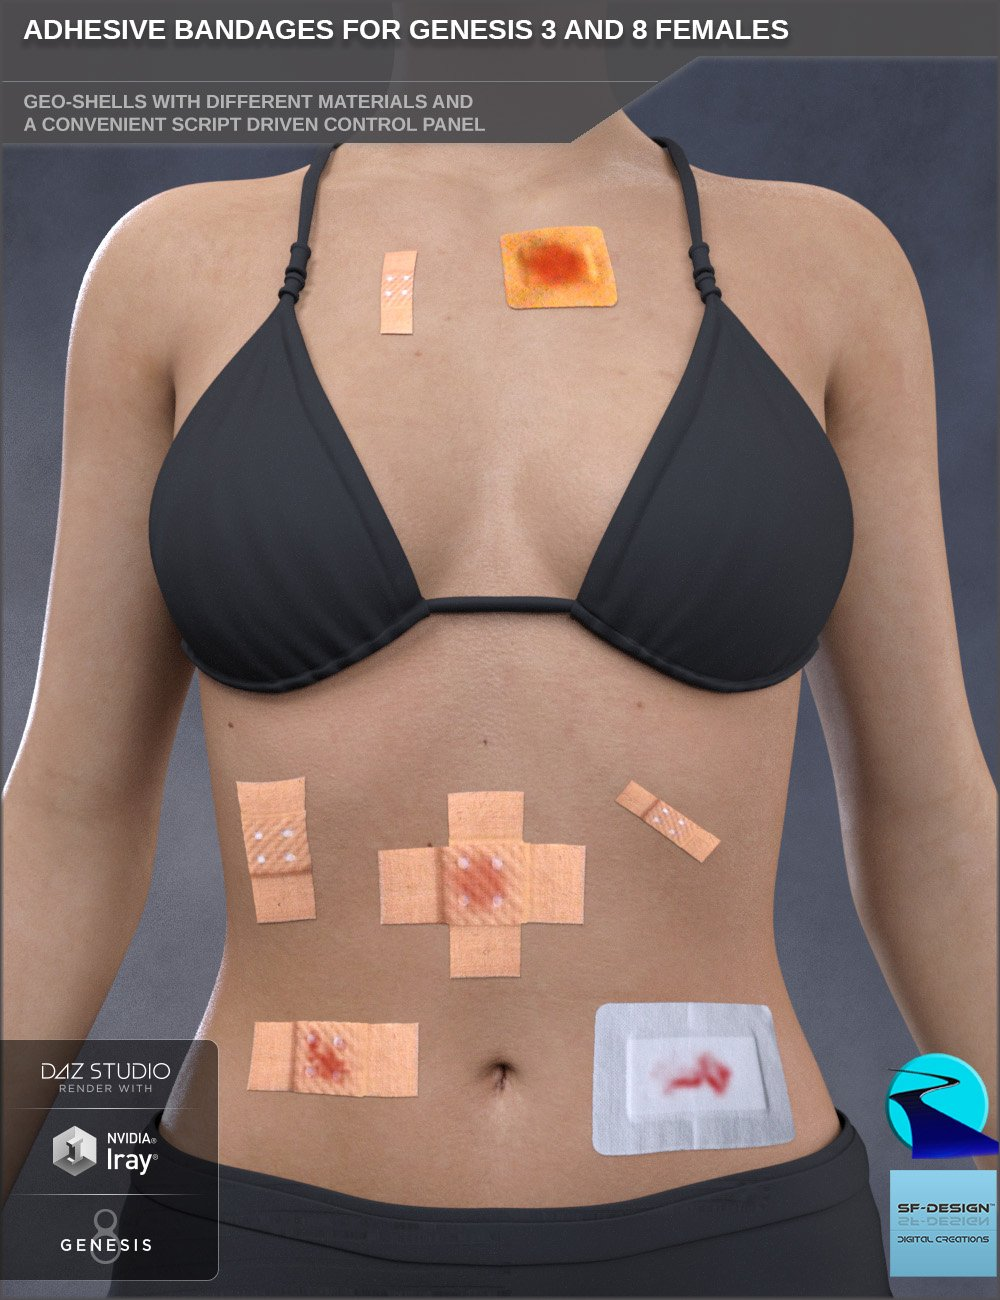 Adhesive Bandages for Genesis 3 and 8 Female(s) by: SF-DesignRiverSoft Art, 3D Models by Daz 3D